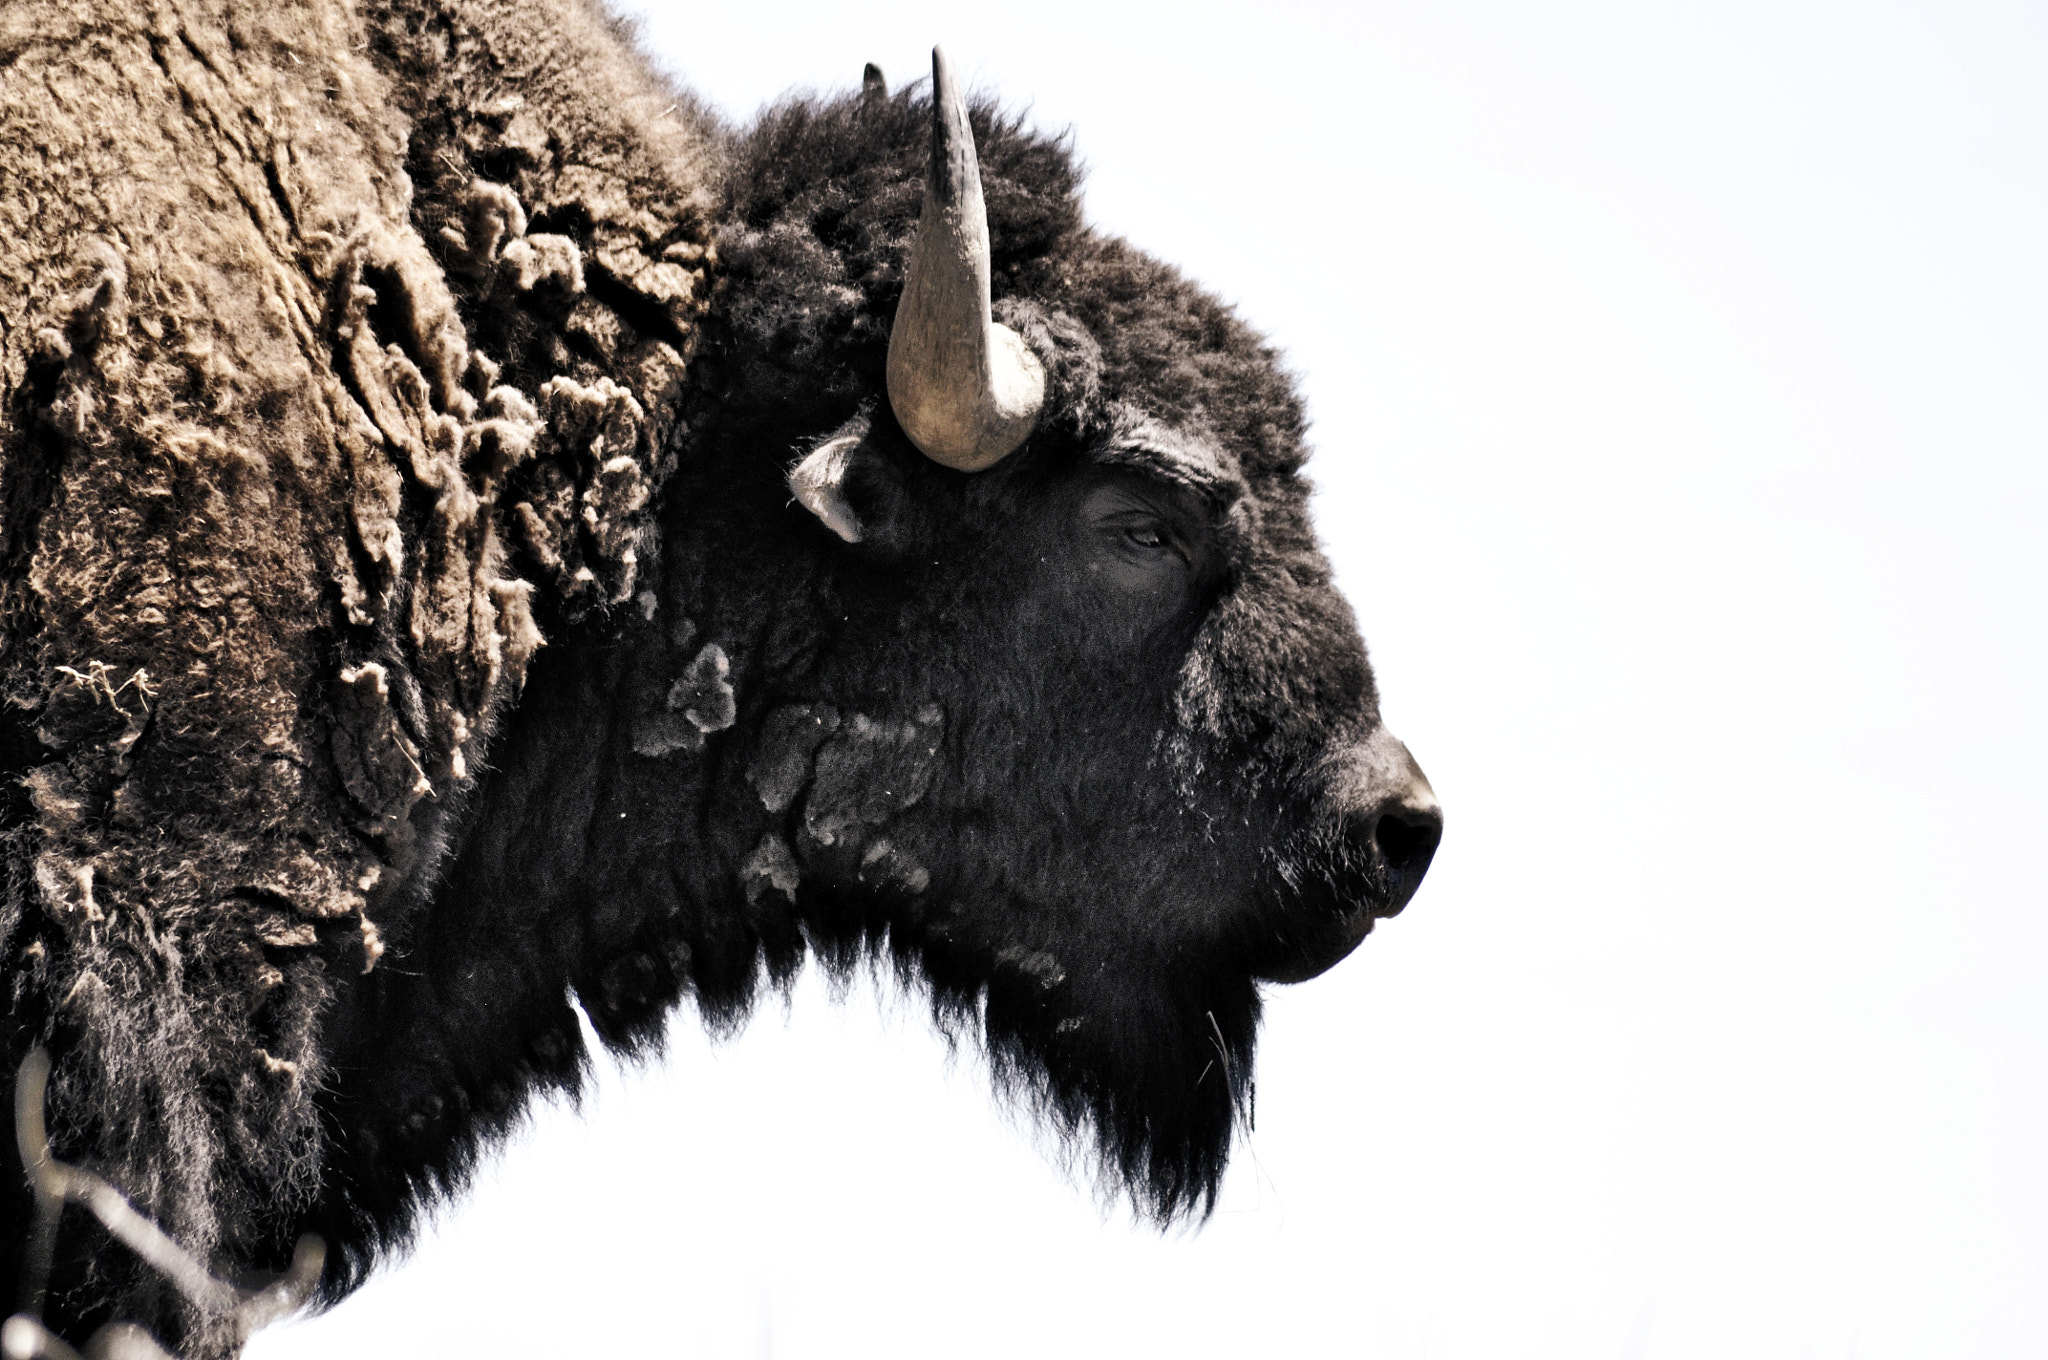 Photograph Bison by Enoxh Eloe on 500px